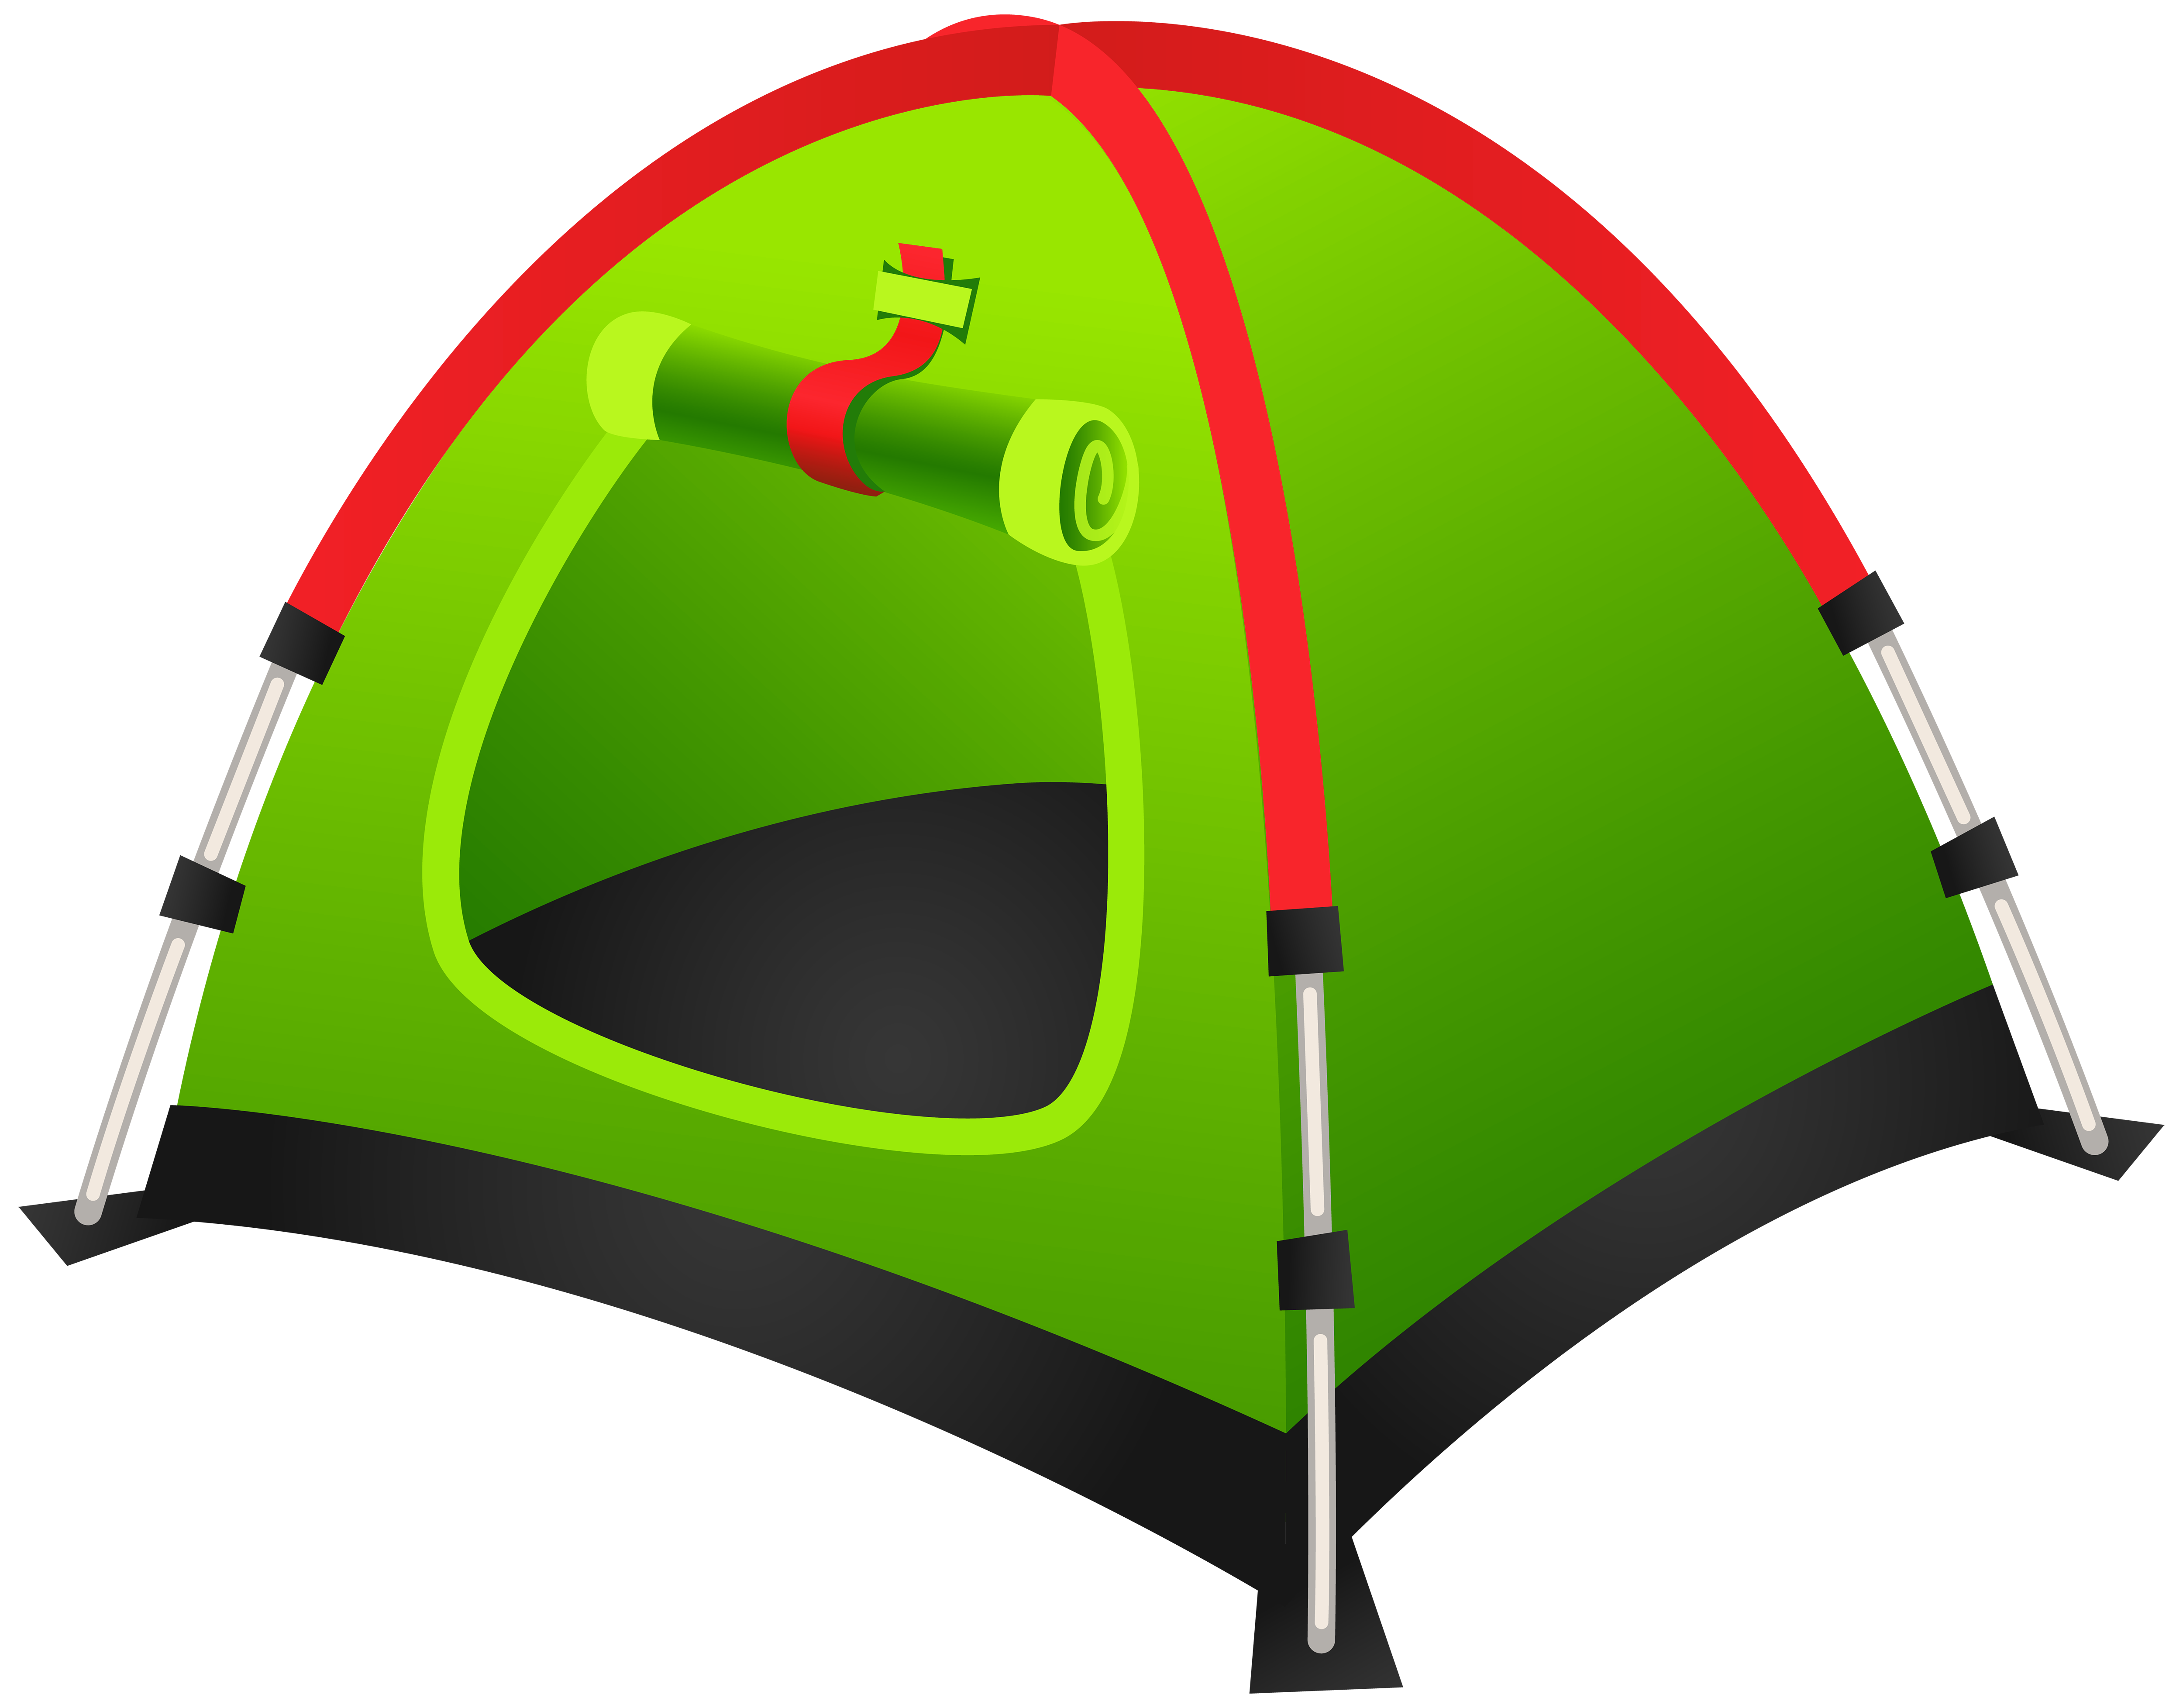 Tourist Green Tent PNG Clipart Image-Tourist Green Tent PNG Clipart Image-18